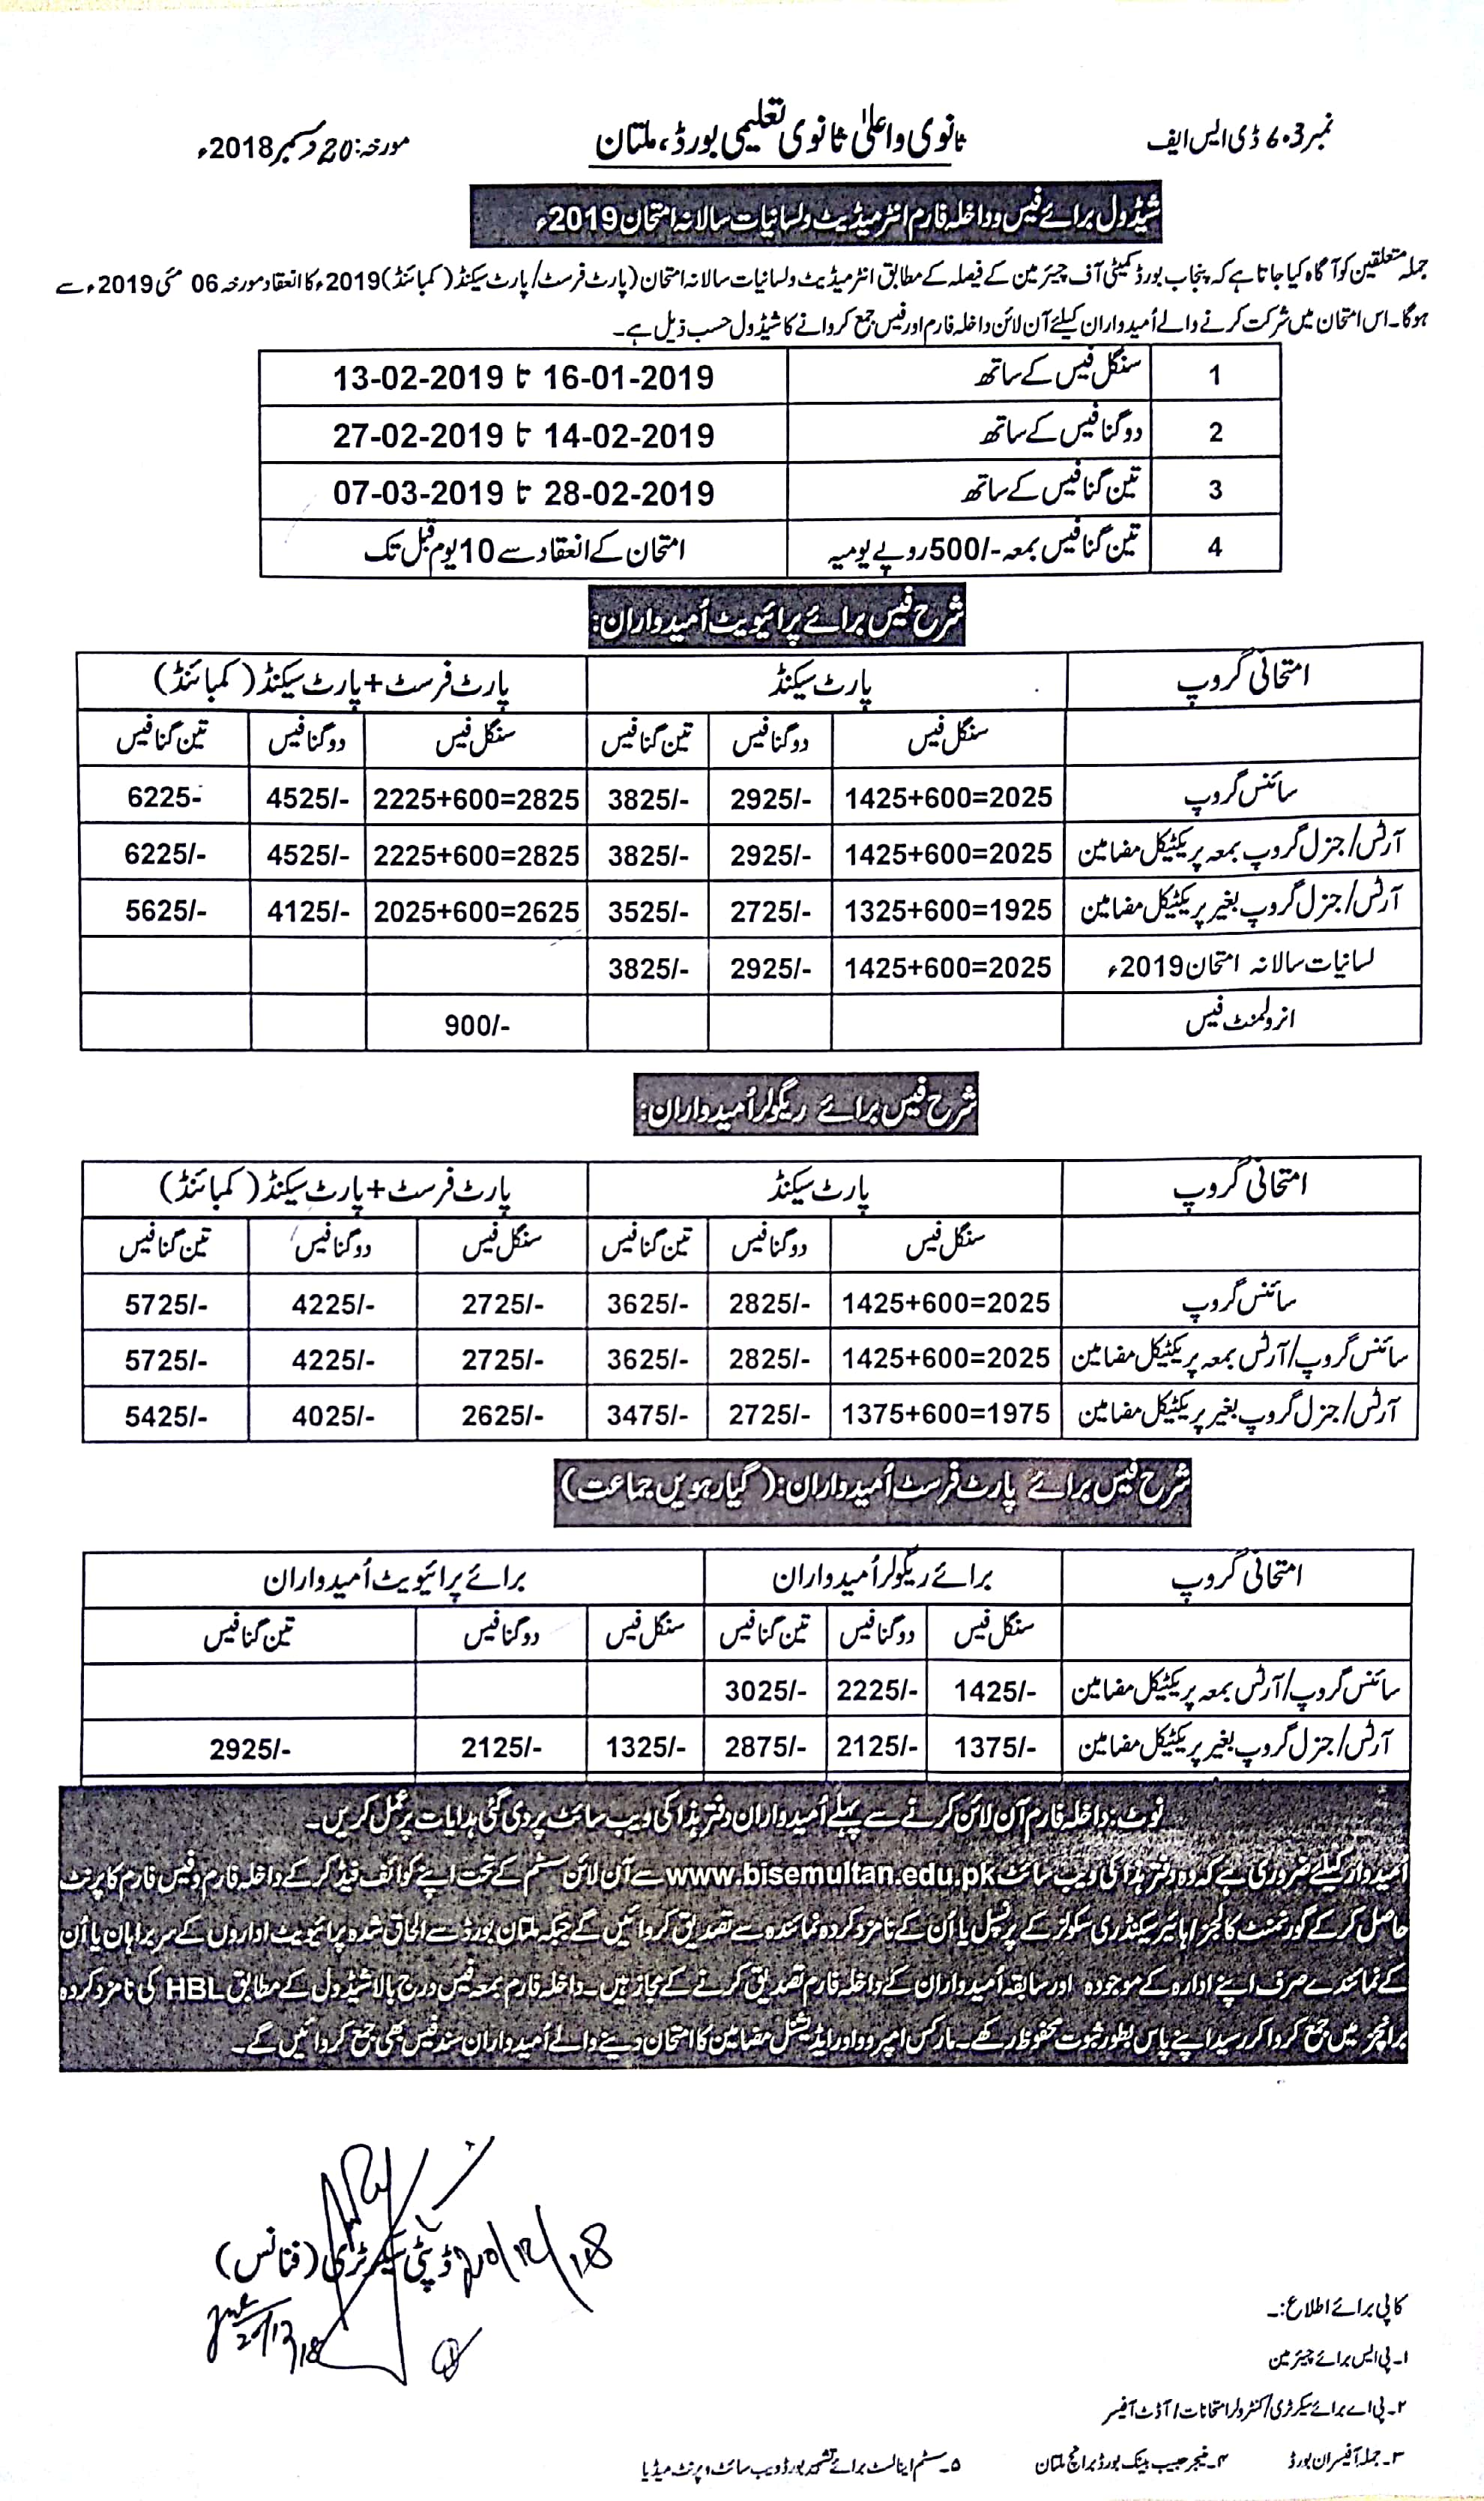 Multan Board Inter Admission Form 2019, Fee, Schedule FA, FSc, ICom, ICS